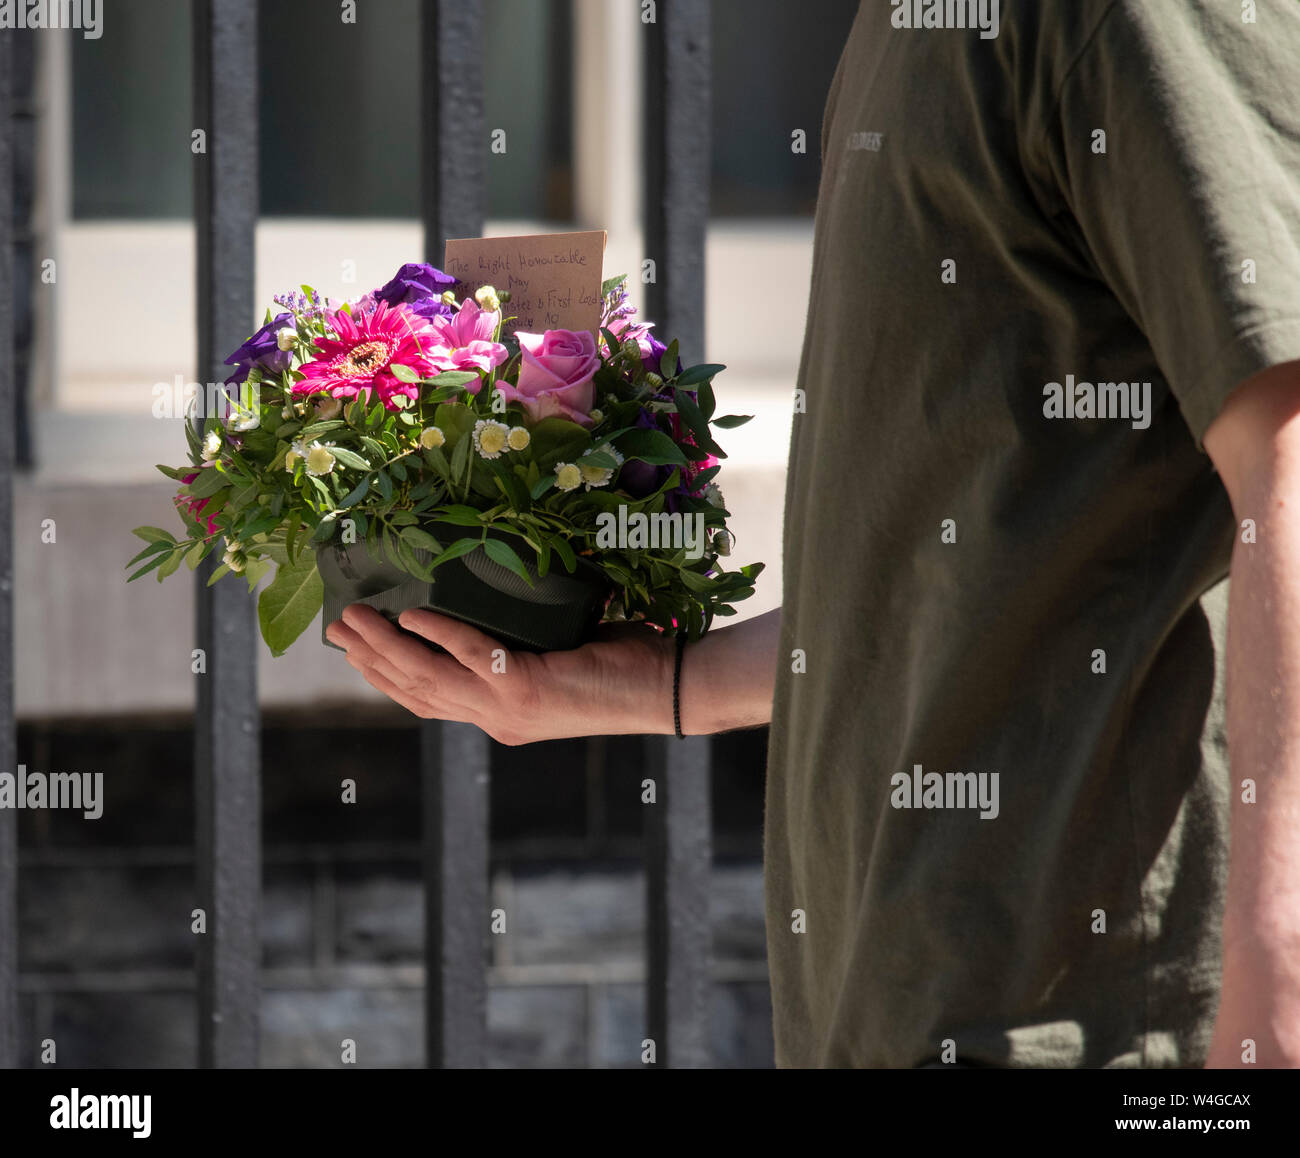 Downing Street, London, UK. 23rd July 2019. Flowers are delivered to The Right Honourable Theresa May in Downing Street during her final Cabinet Meeting before she resigns. Credit: Malcolm Park/Alamy Live News. Stock Photo